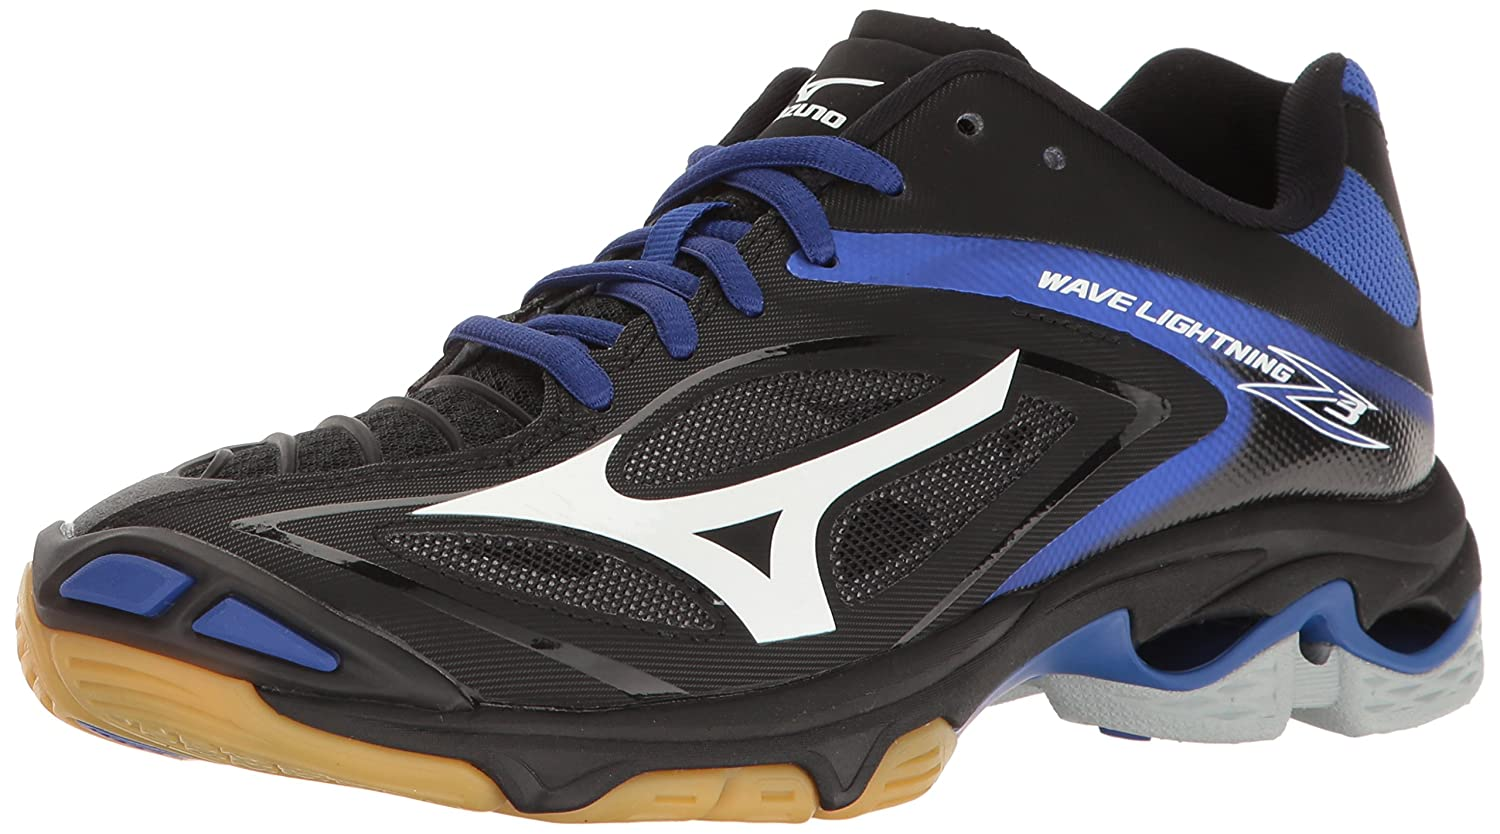 Mizuno Volleyball Women's Wave Lightning Z3 Volleyball Mizuno Shoe B01MTNN1LP 11 B(M) US|Black/Royal 85dd31